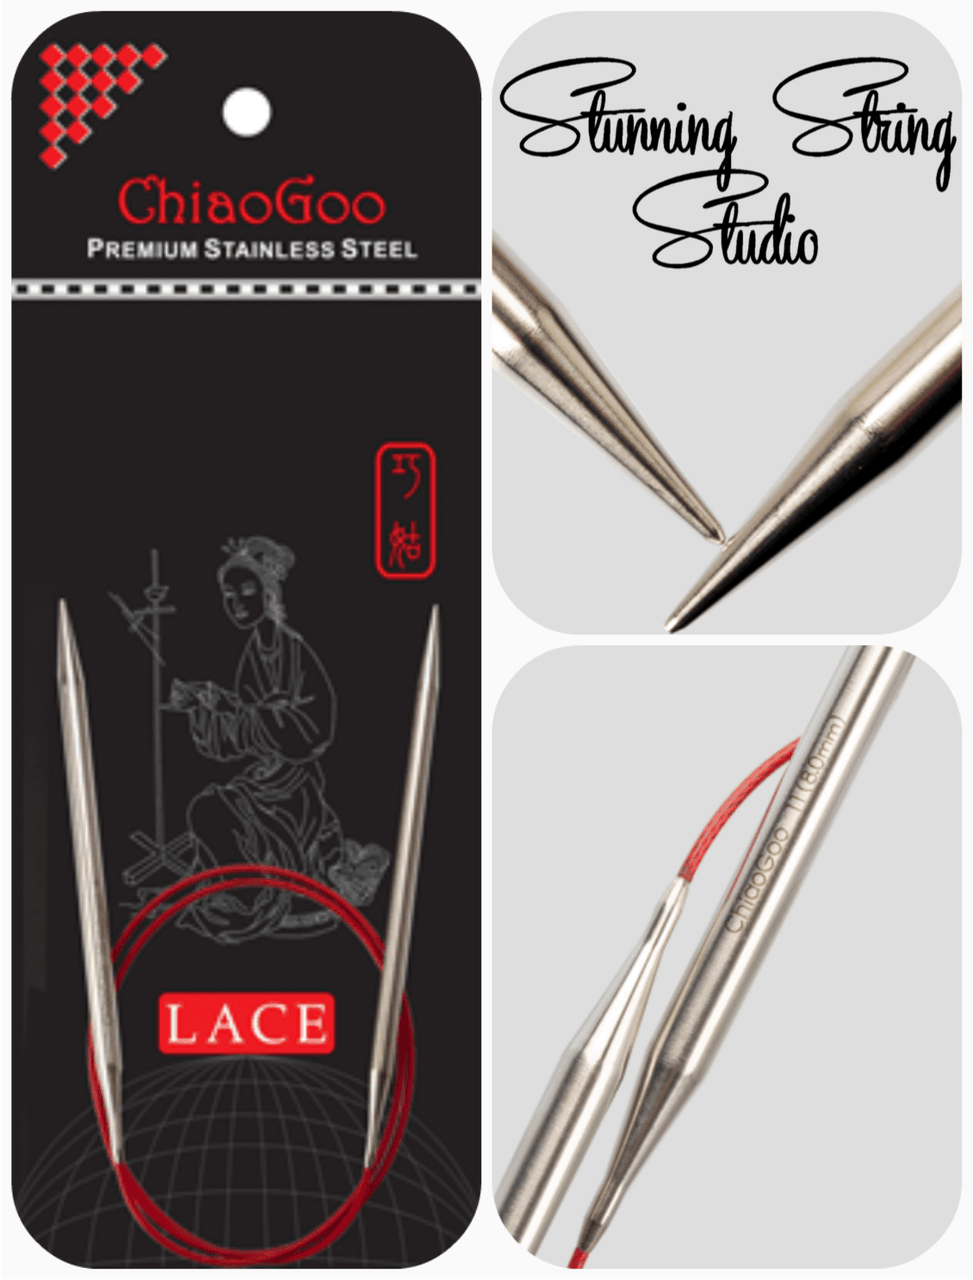 Chiaogoo Red Lace Circular Needles